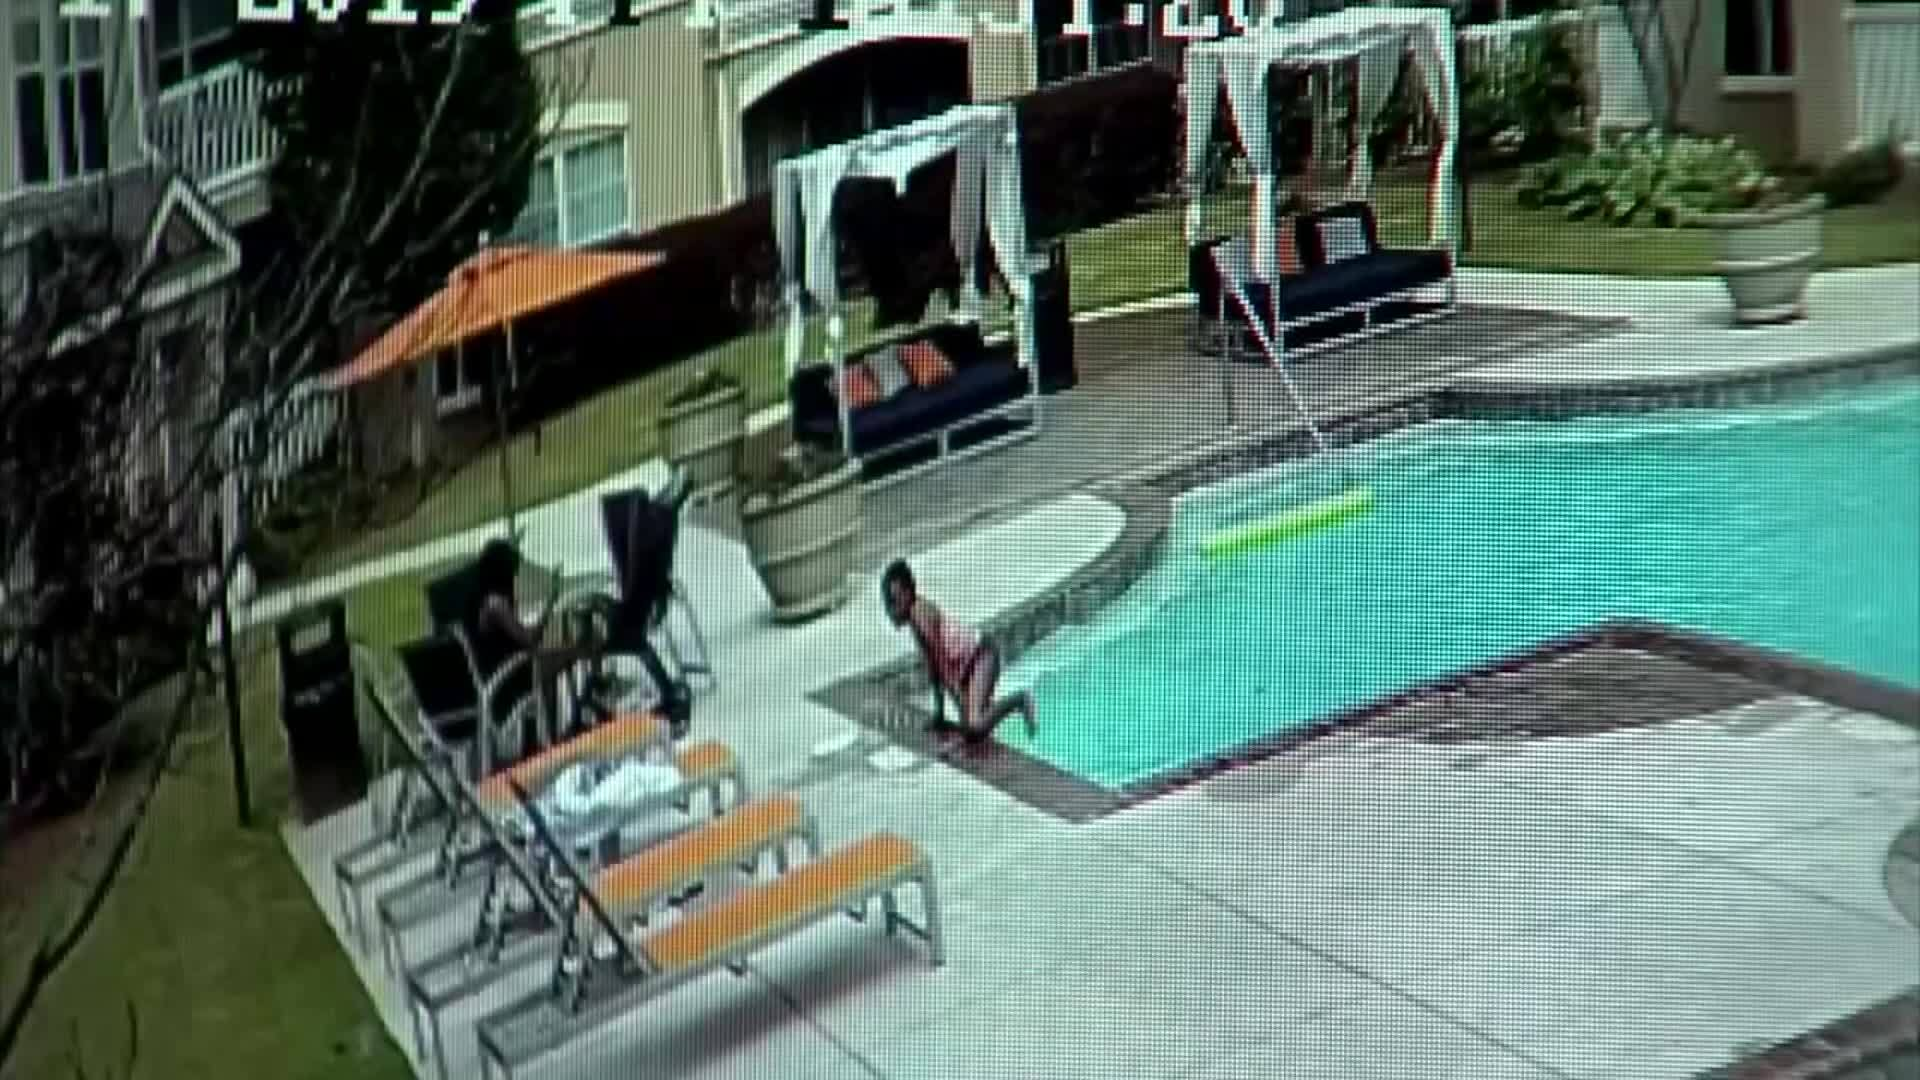 VIDEO: Girl saves sister from drowning in pool